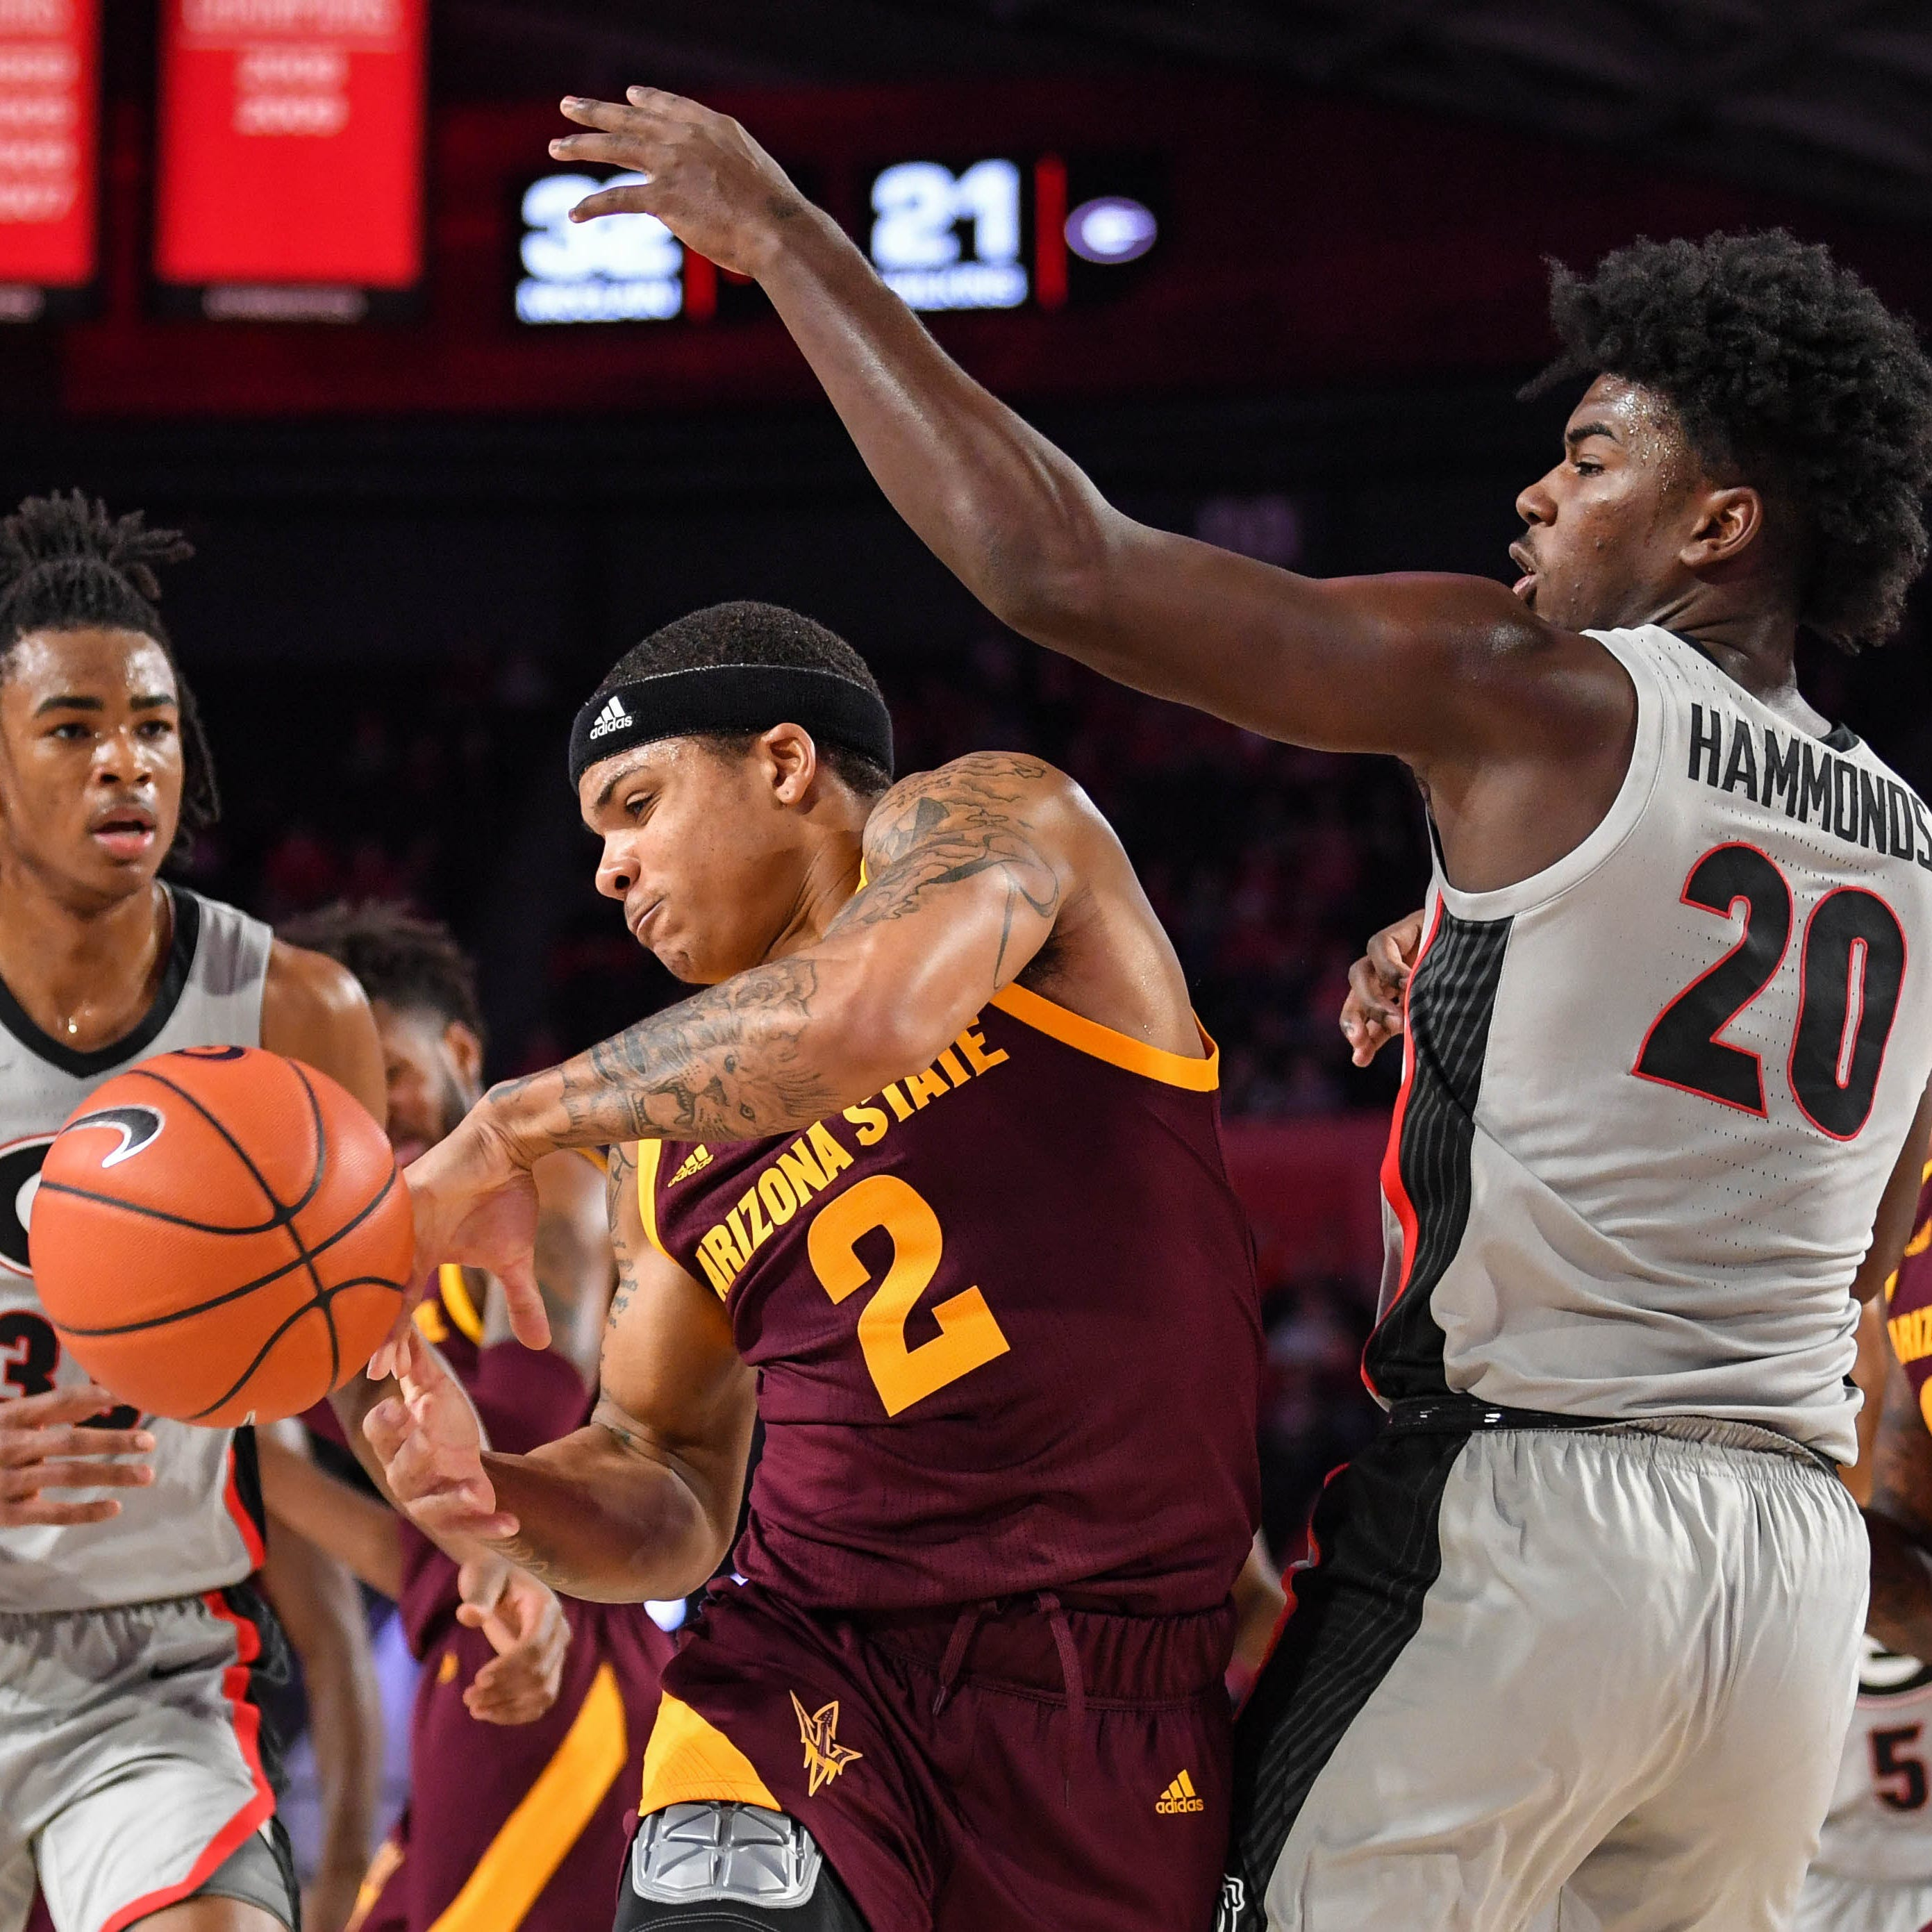 ASU basketball rallies for road win over Georgia